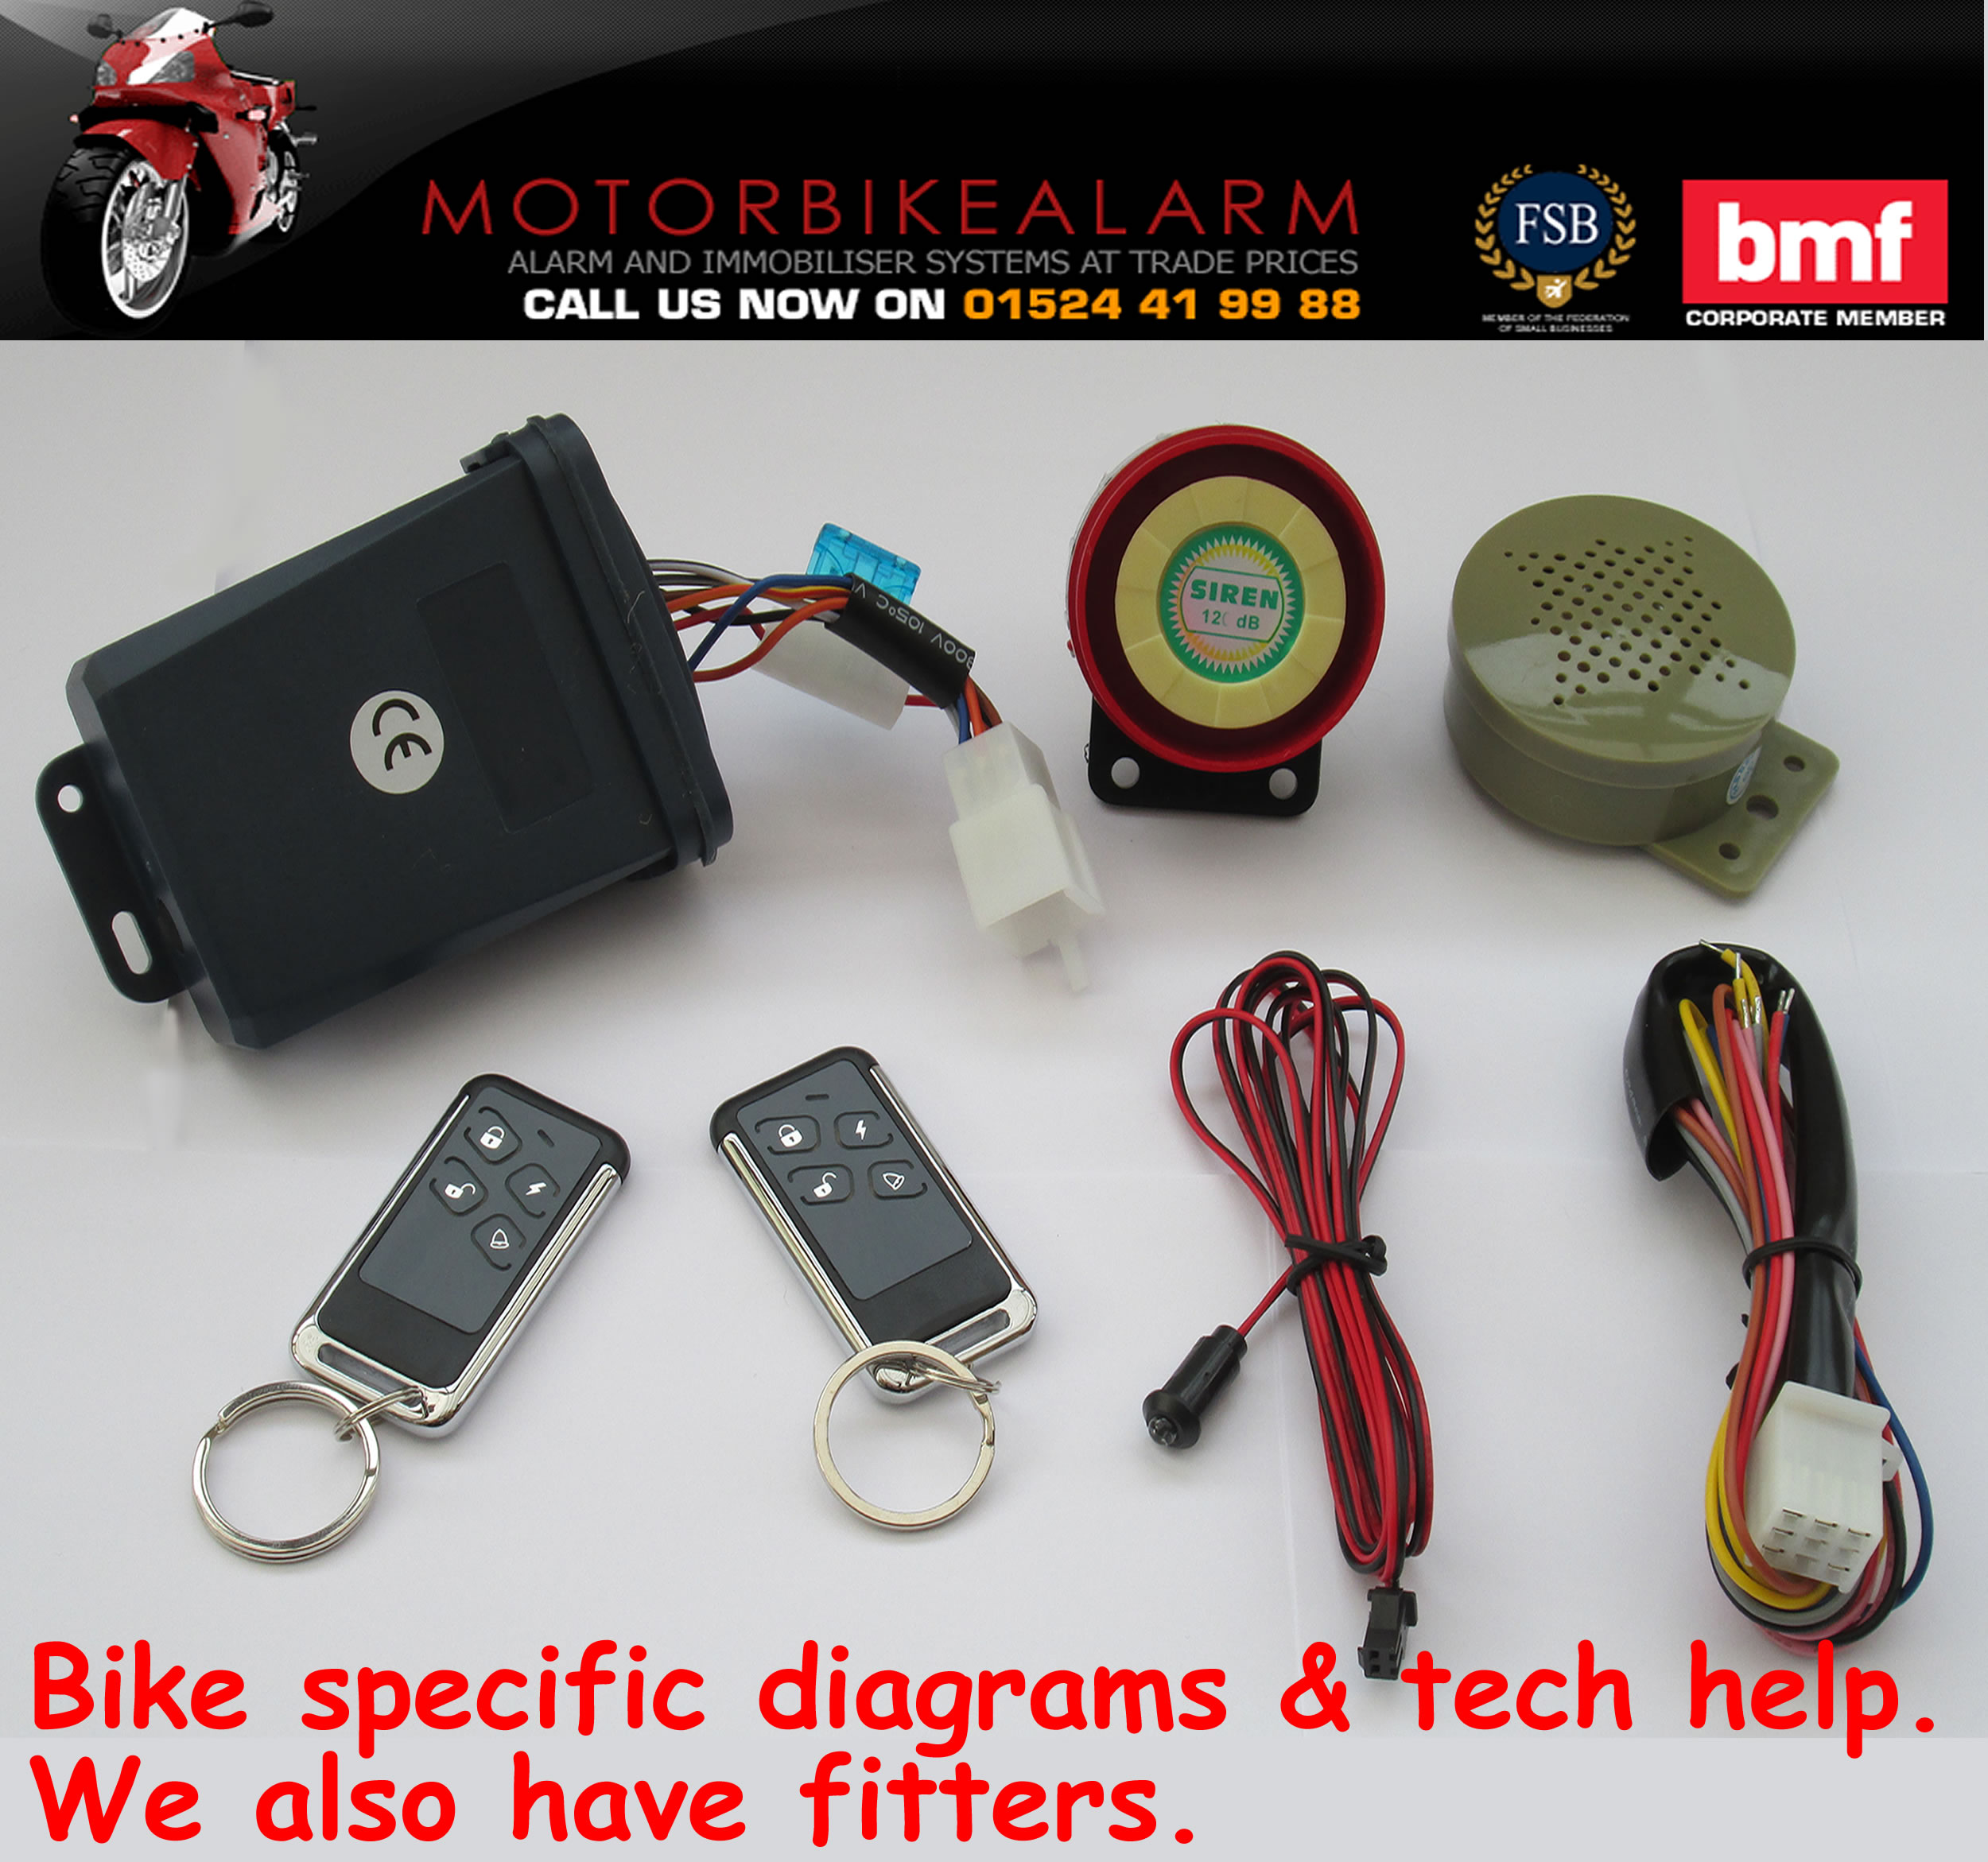 c11talkebay ncs c 11 talking motorbike alarm and immobiliser system cyclone alarm wiring diagram at soozxer.org